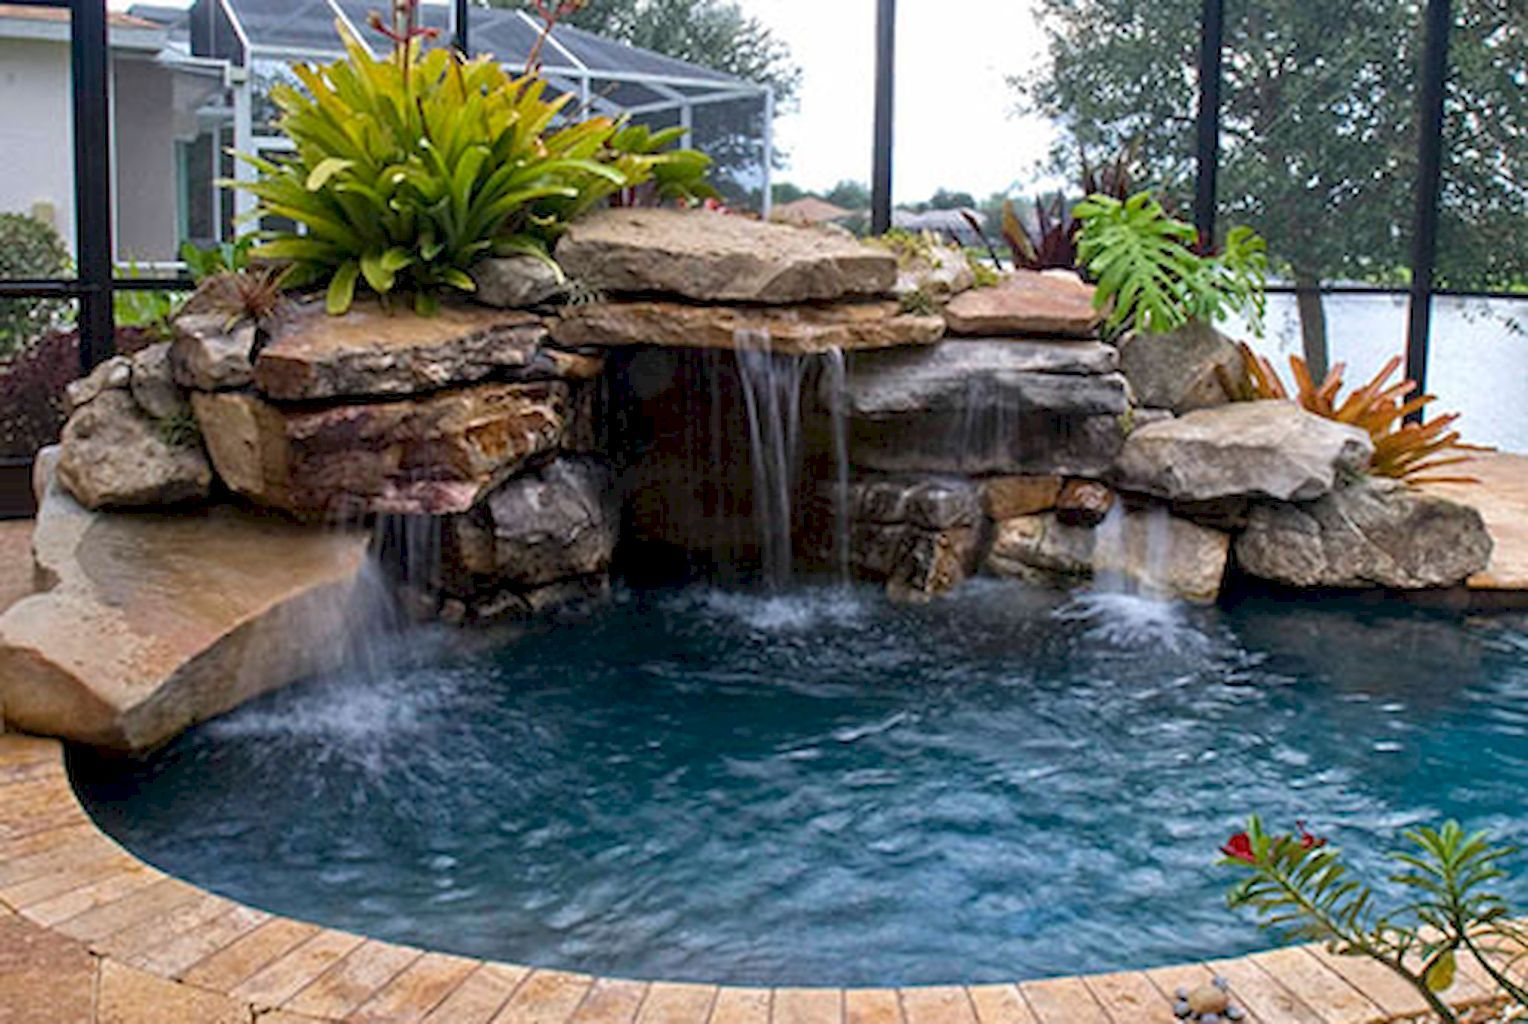 Swimming Pool Ideas For A Small Backyard 76 Swimming Pool Waterfall Backyard Pool Landscaping Pool Landscaping